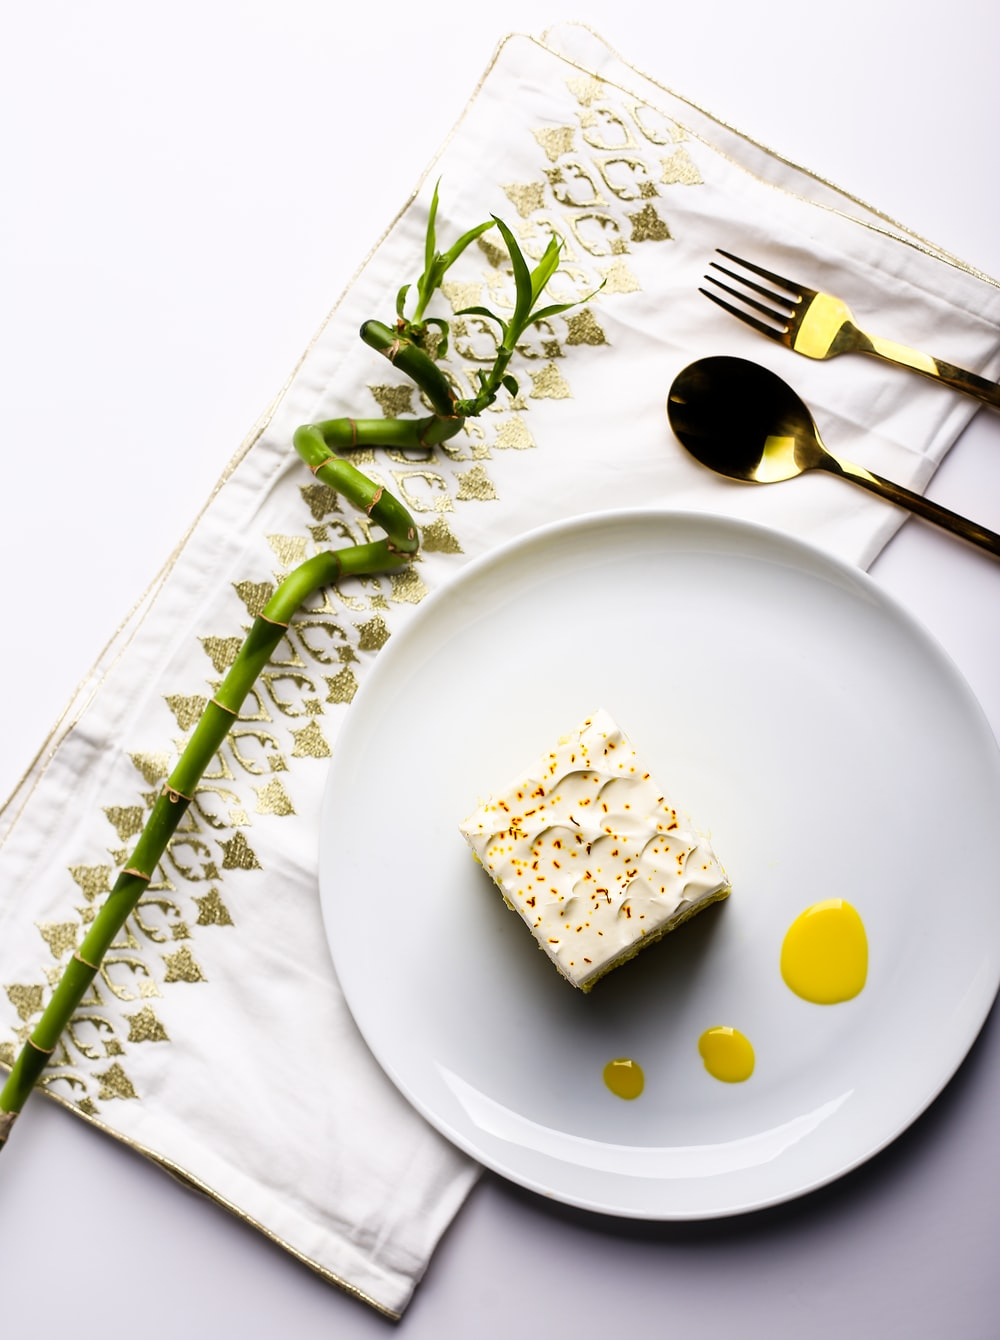 white ceramic plate with green vegetable